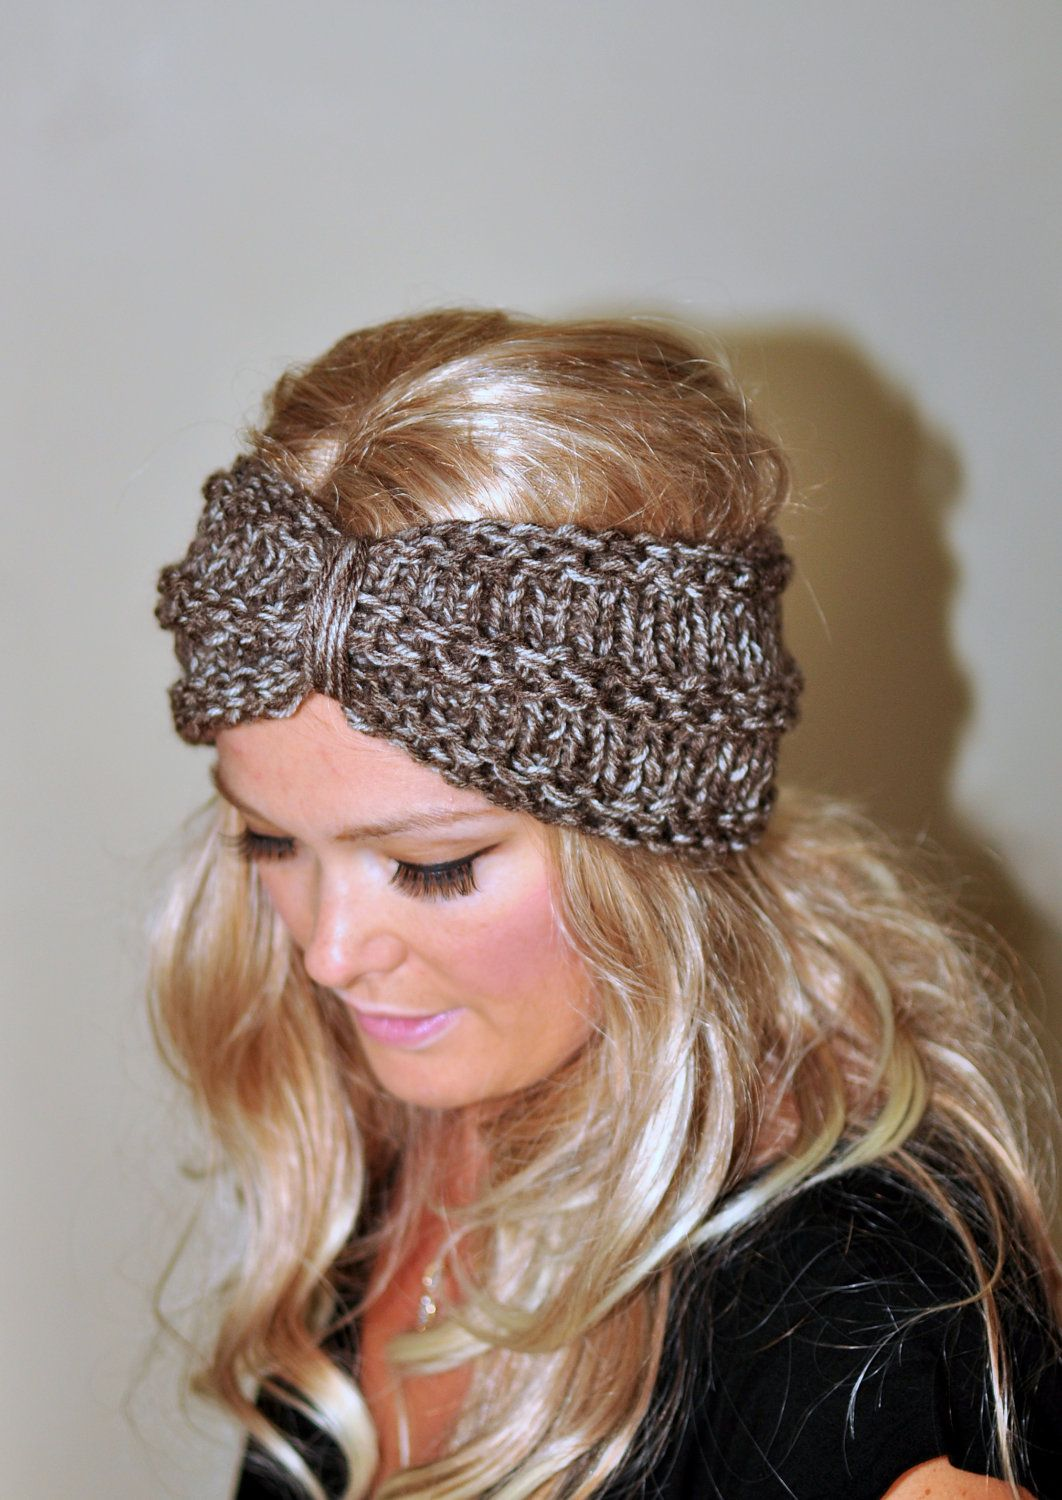 Turban+Headband+Crochet+Head+wrap+Knit+ear+warmer+by+lucymir,+$29.99 ...